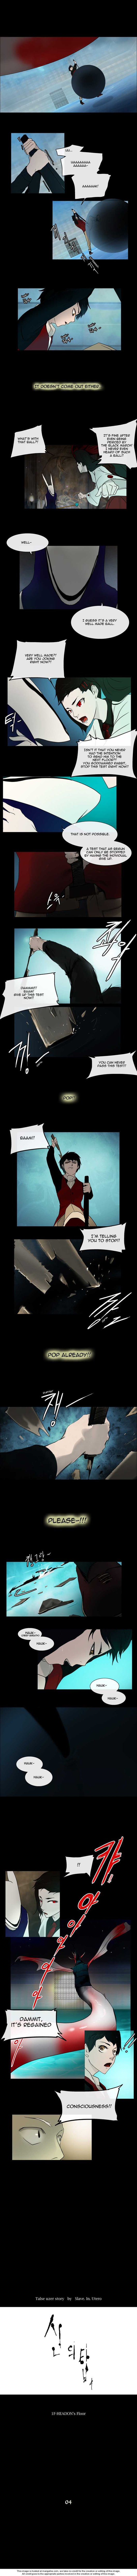 Tower of God 4 Page 2